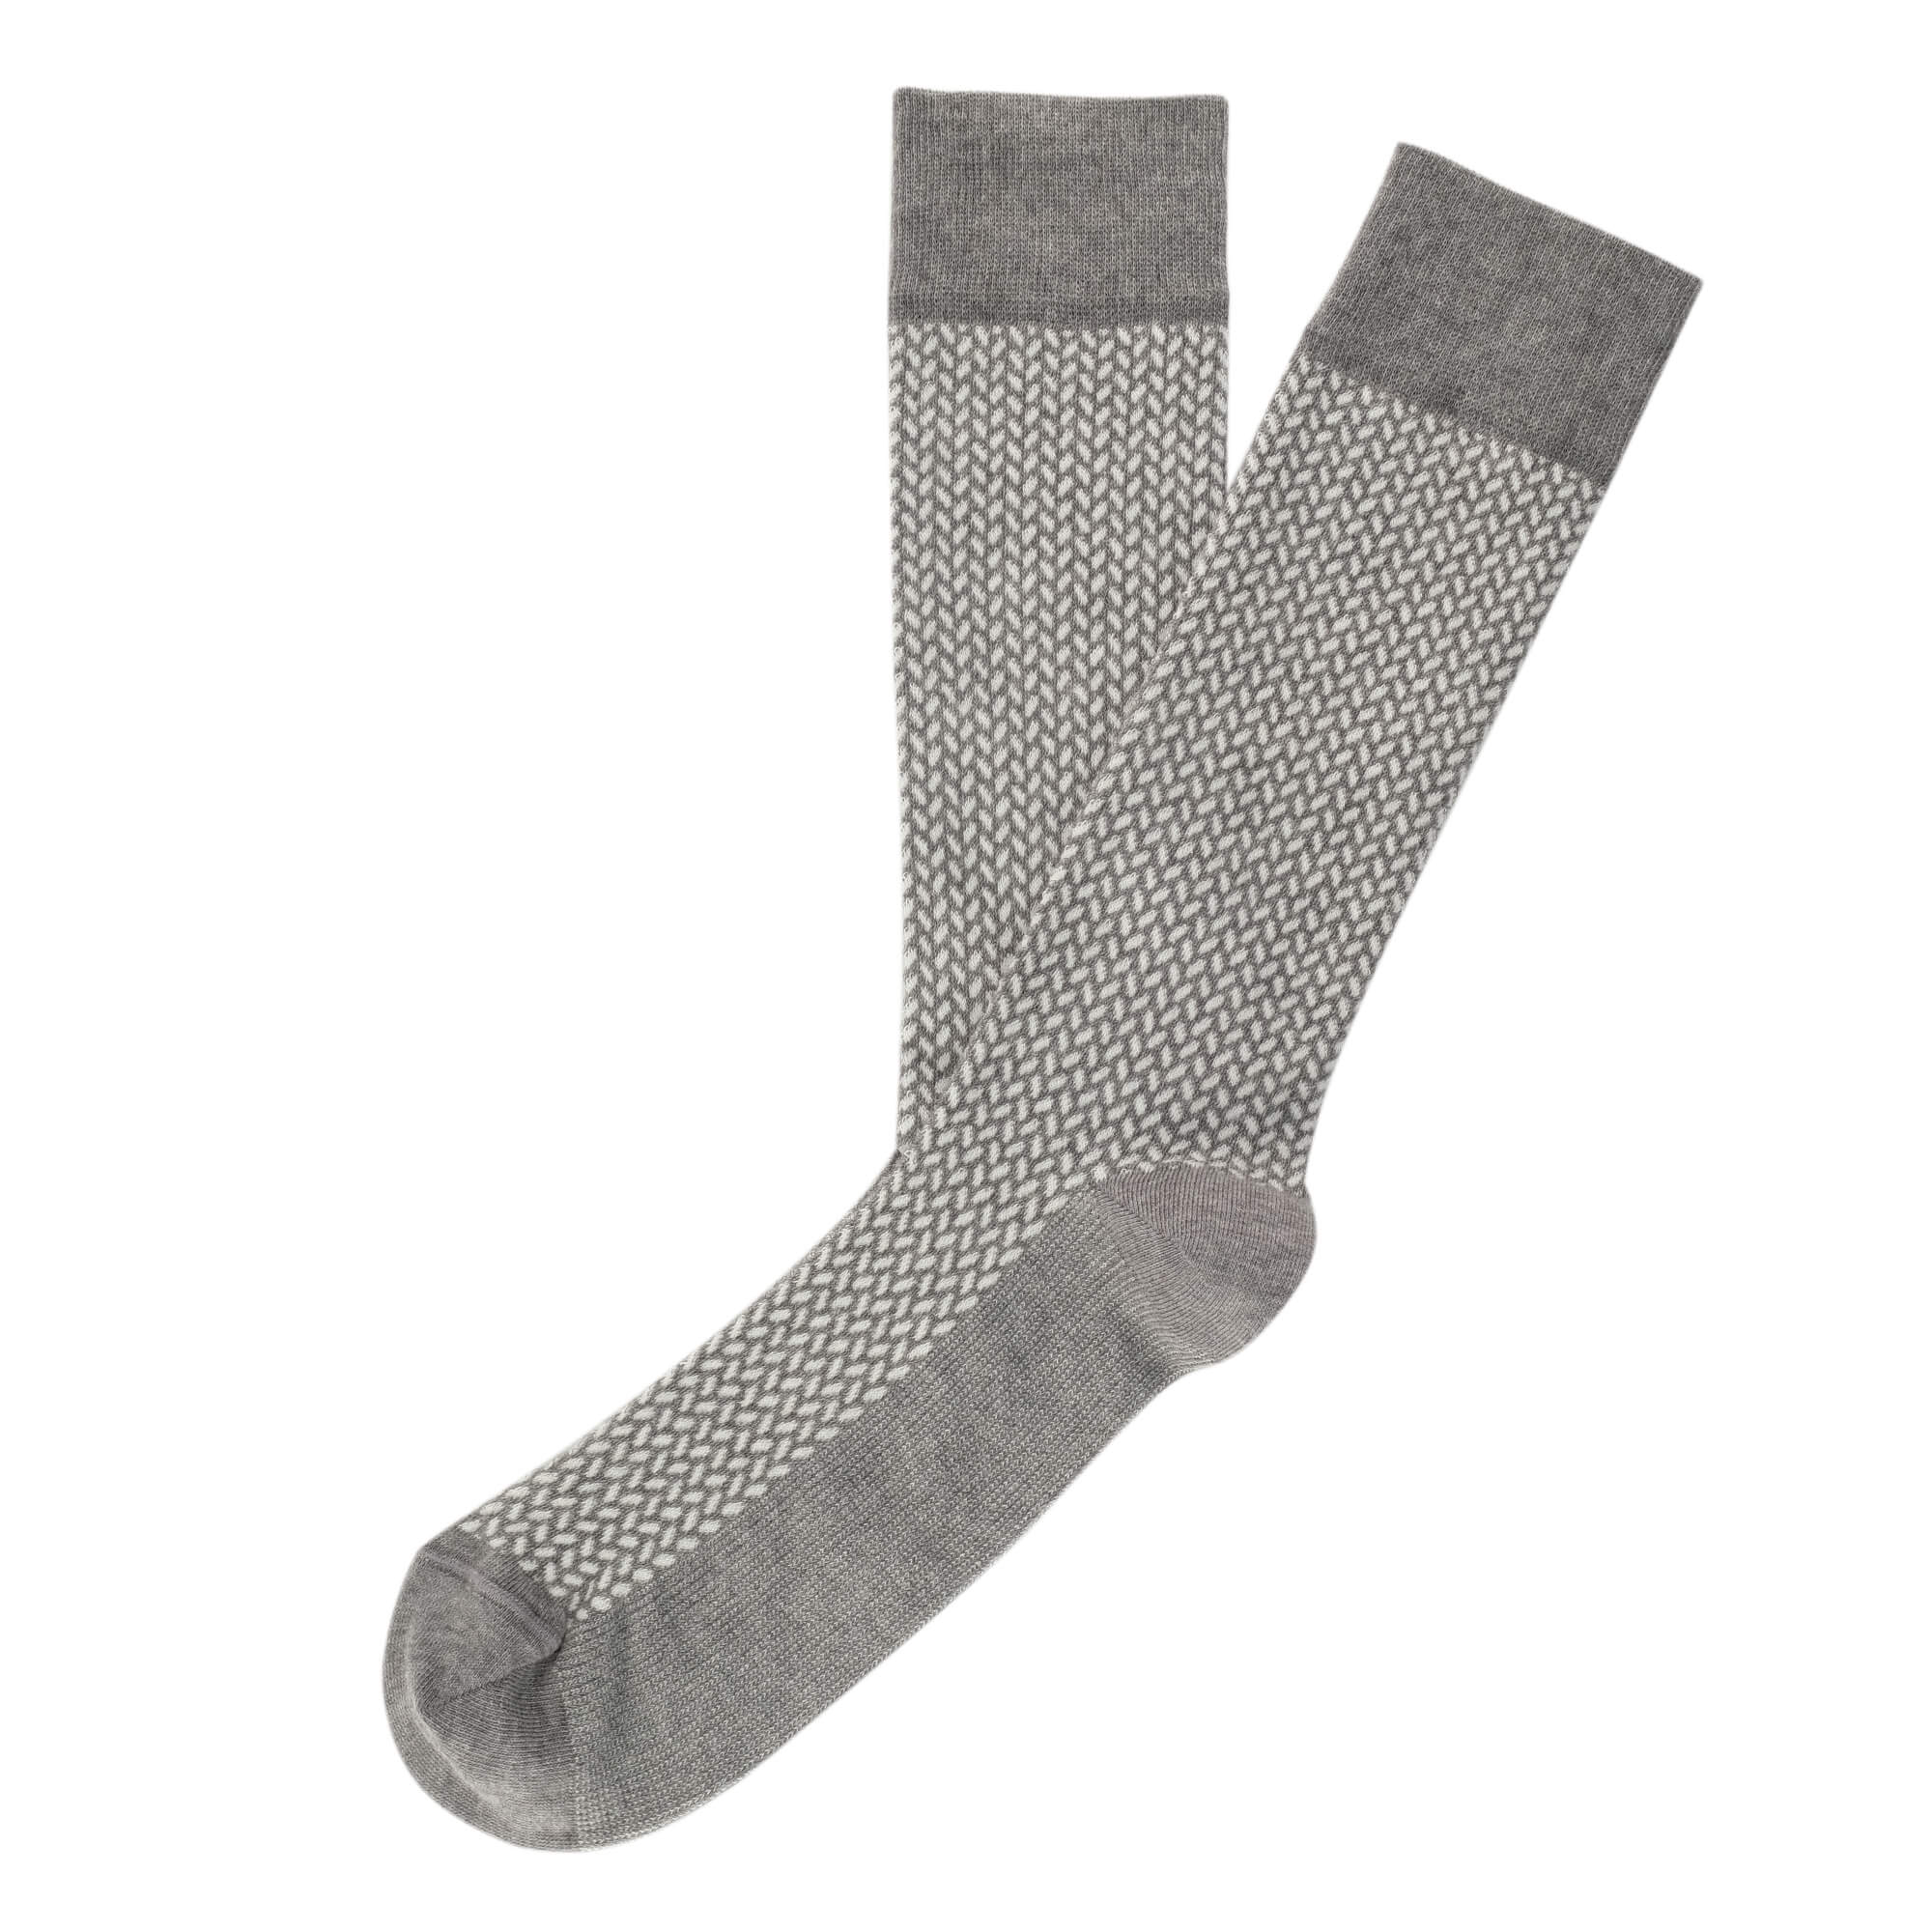 Herringbone Blocks Men's Socks - Grey